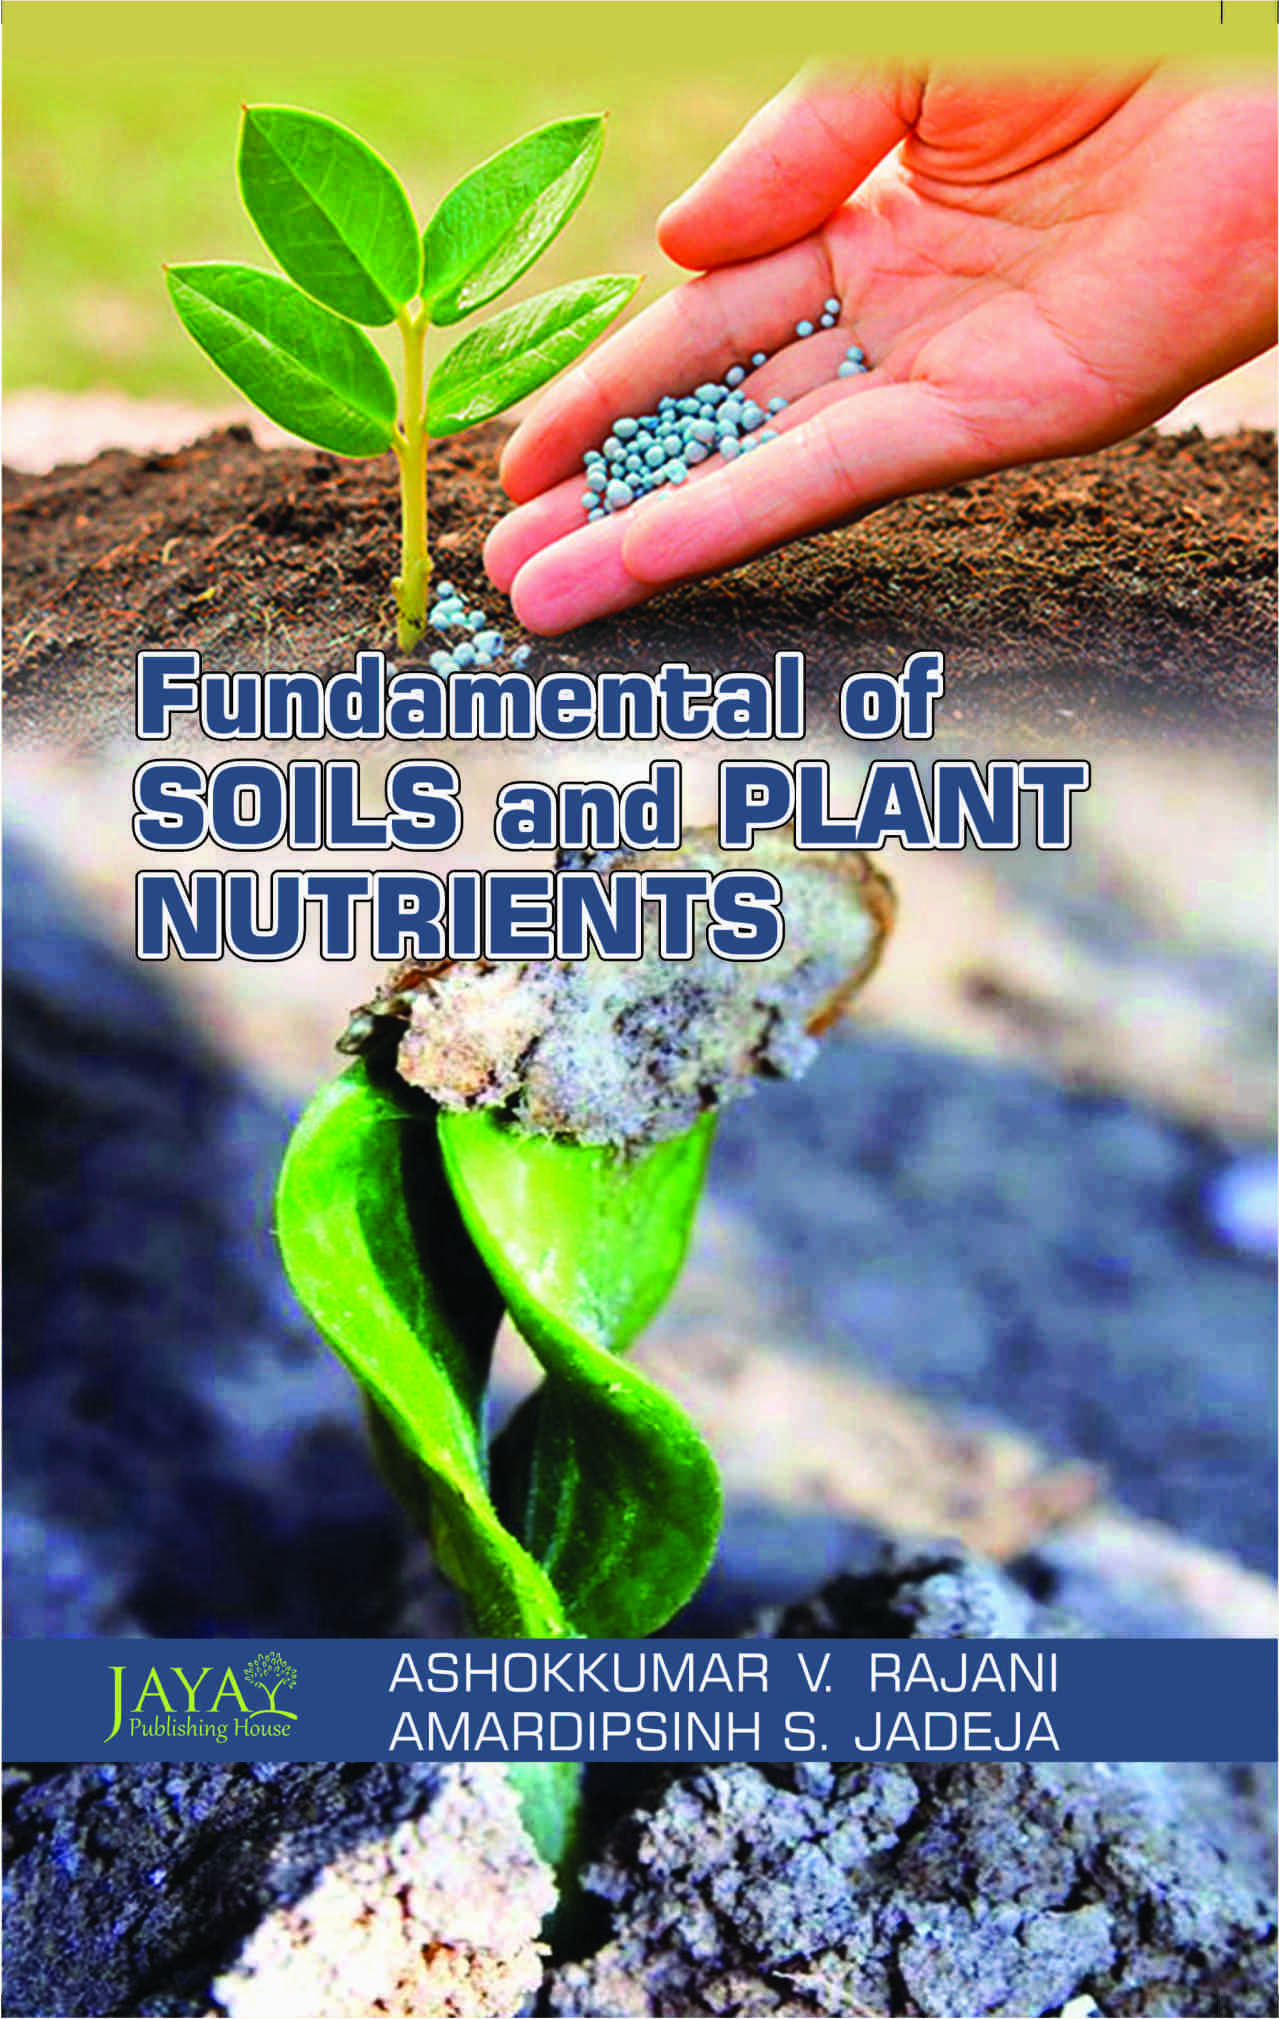 Fundamentals of Soil and Plant Nutrients